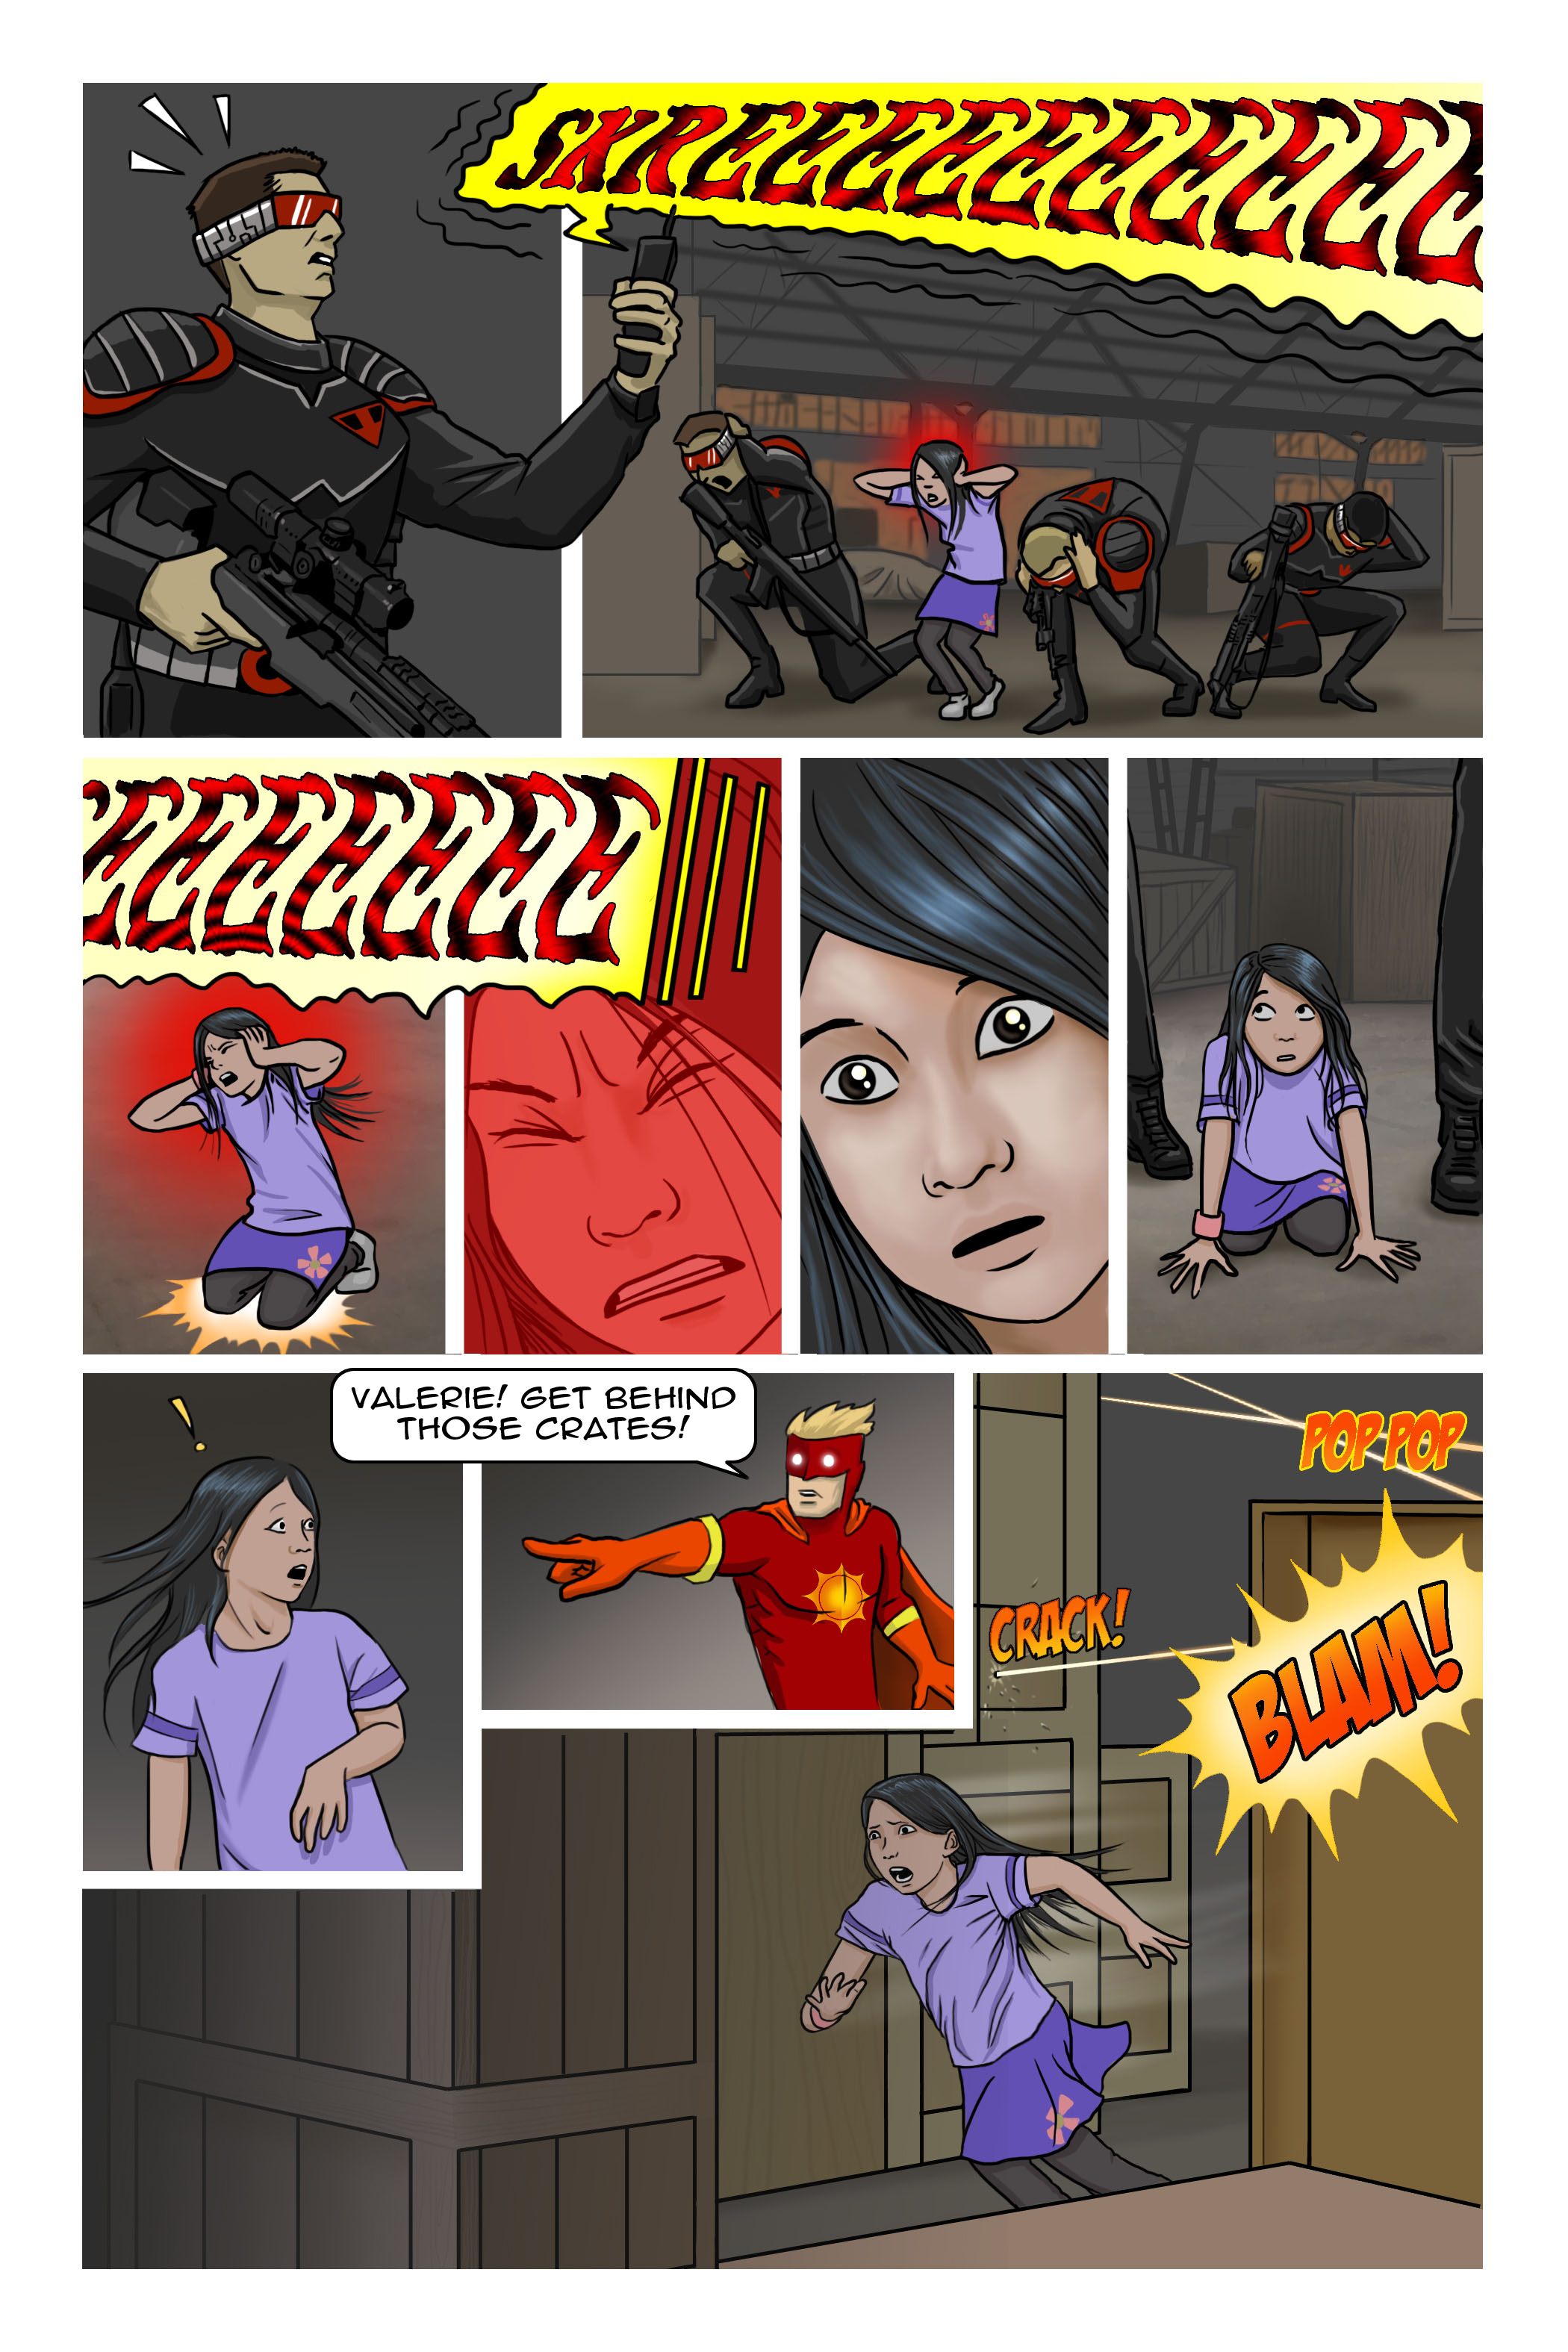 Page 23A